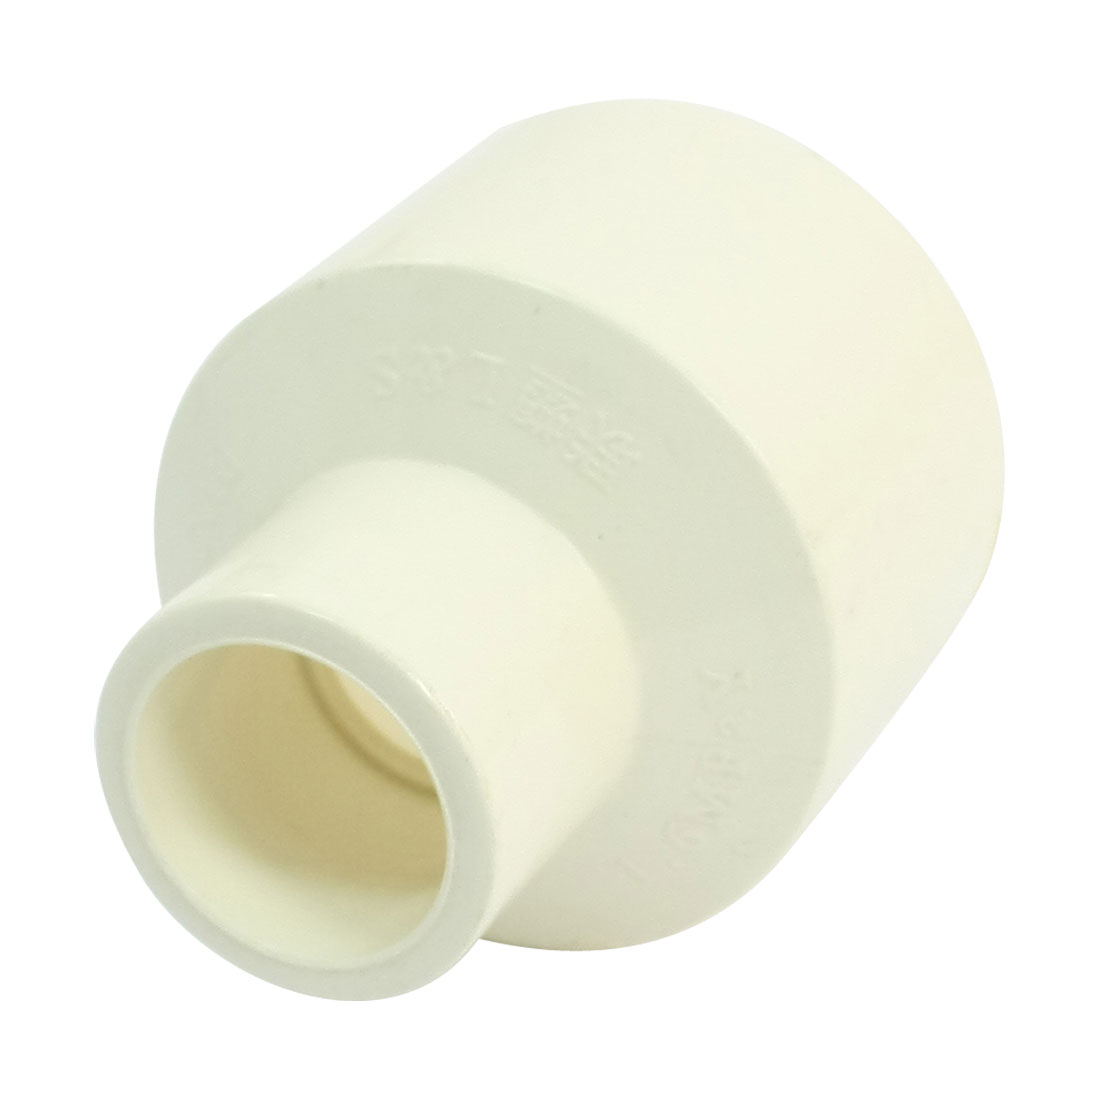 White-PVC-Pipe-Reducing-Coupling-Straight-Coupler-Connector-40mm-x-20mm